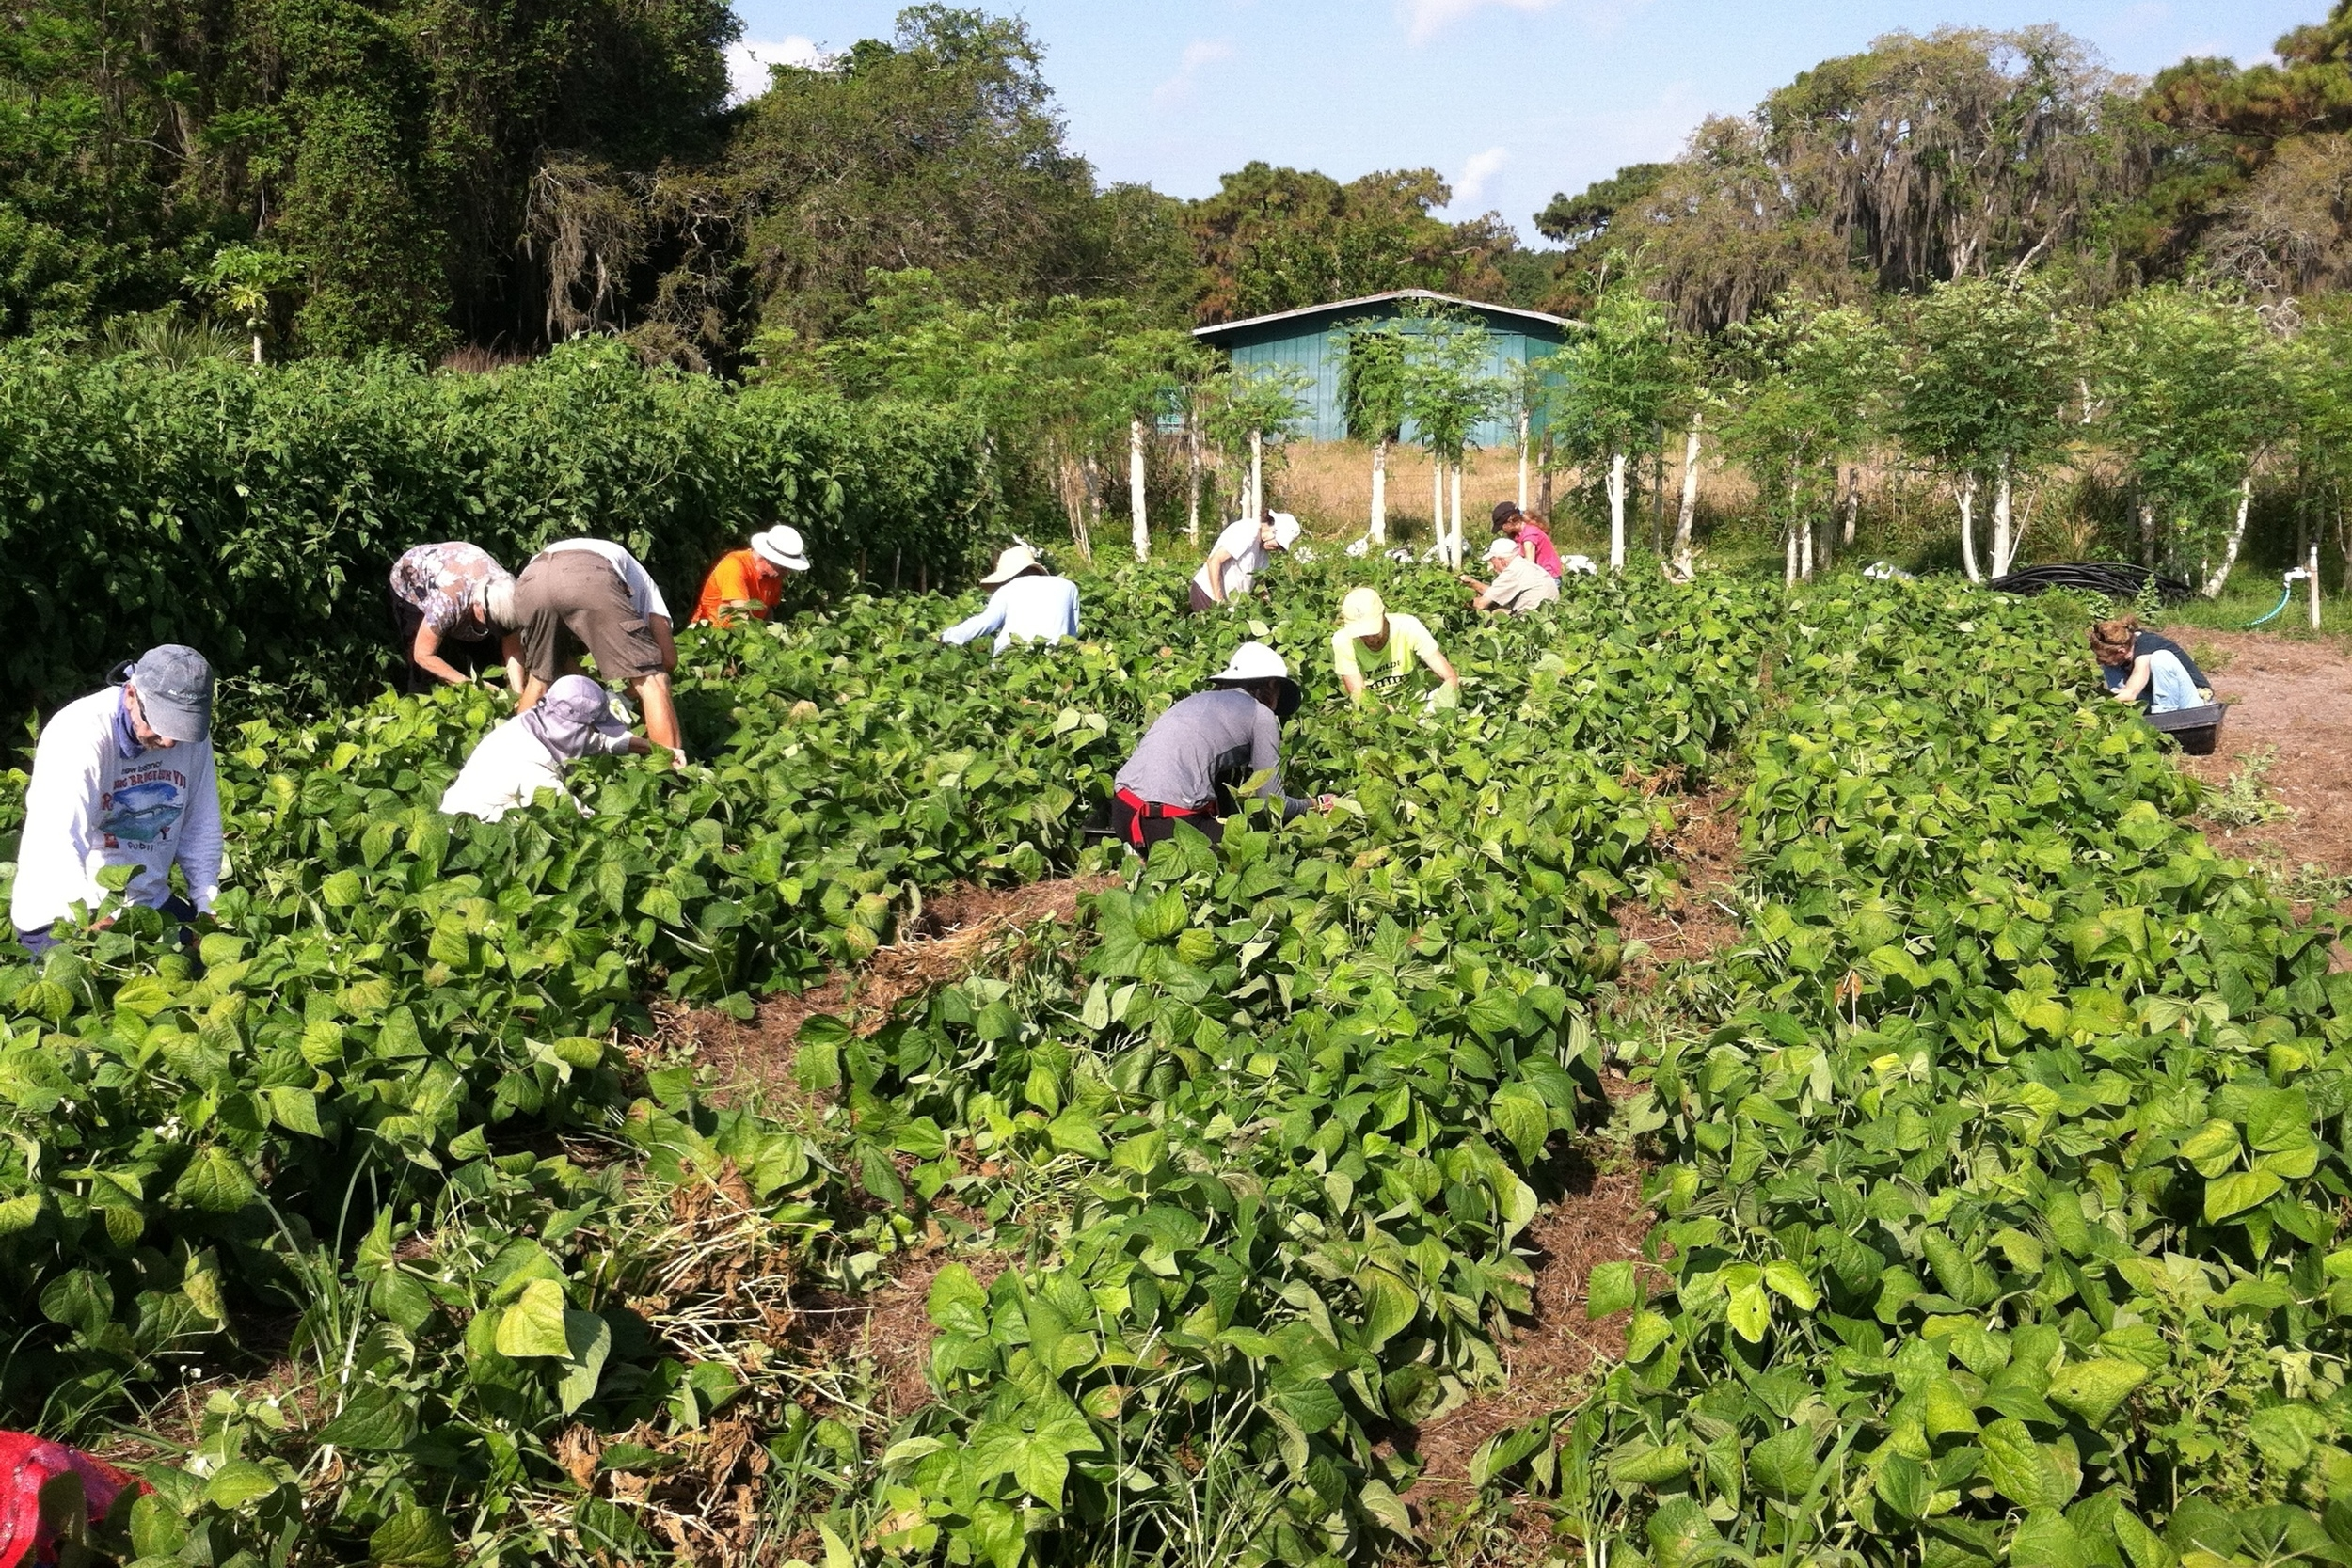 Green beans were among the warm-weather crops harvested by volunteers at Jessica's Organic Farm for All Faiths Food Bank last month.